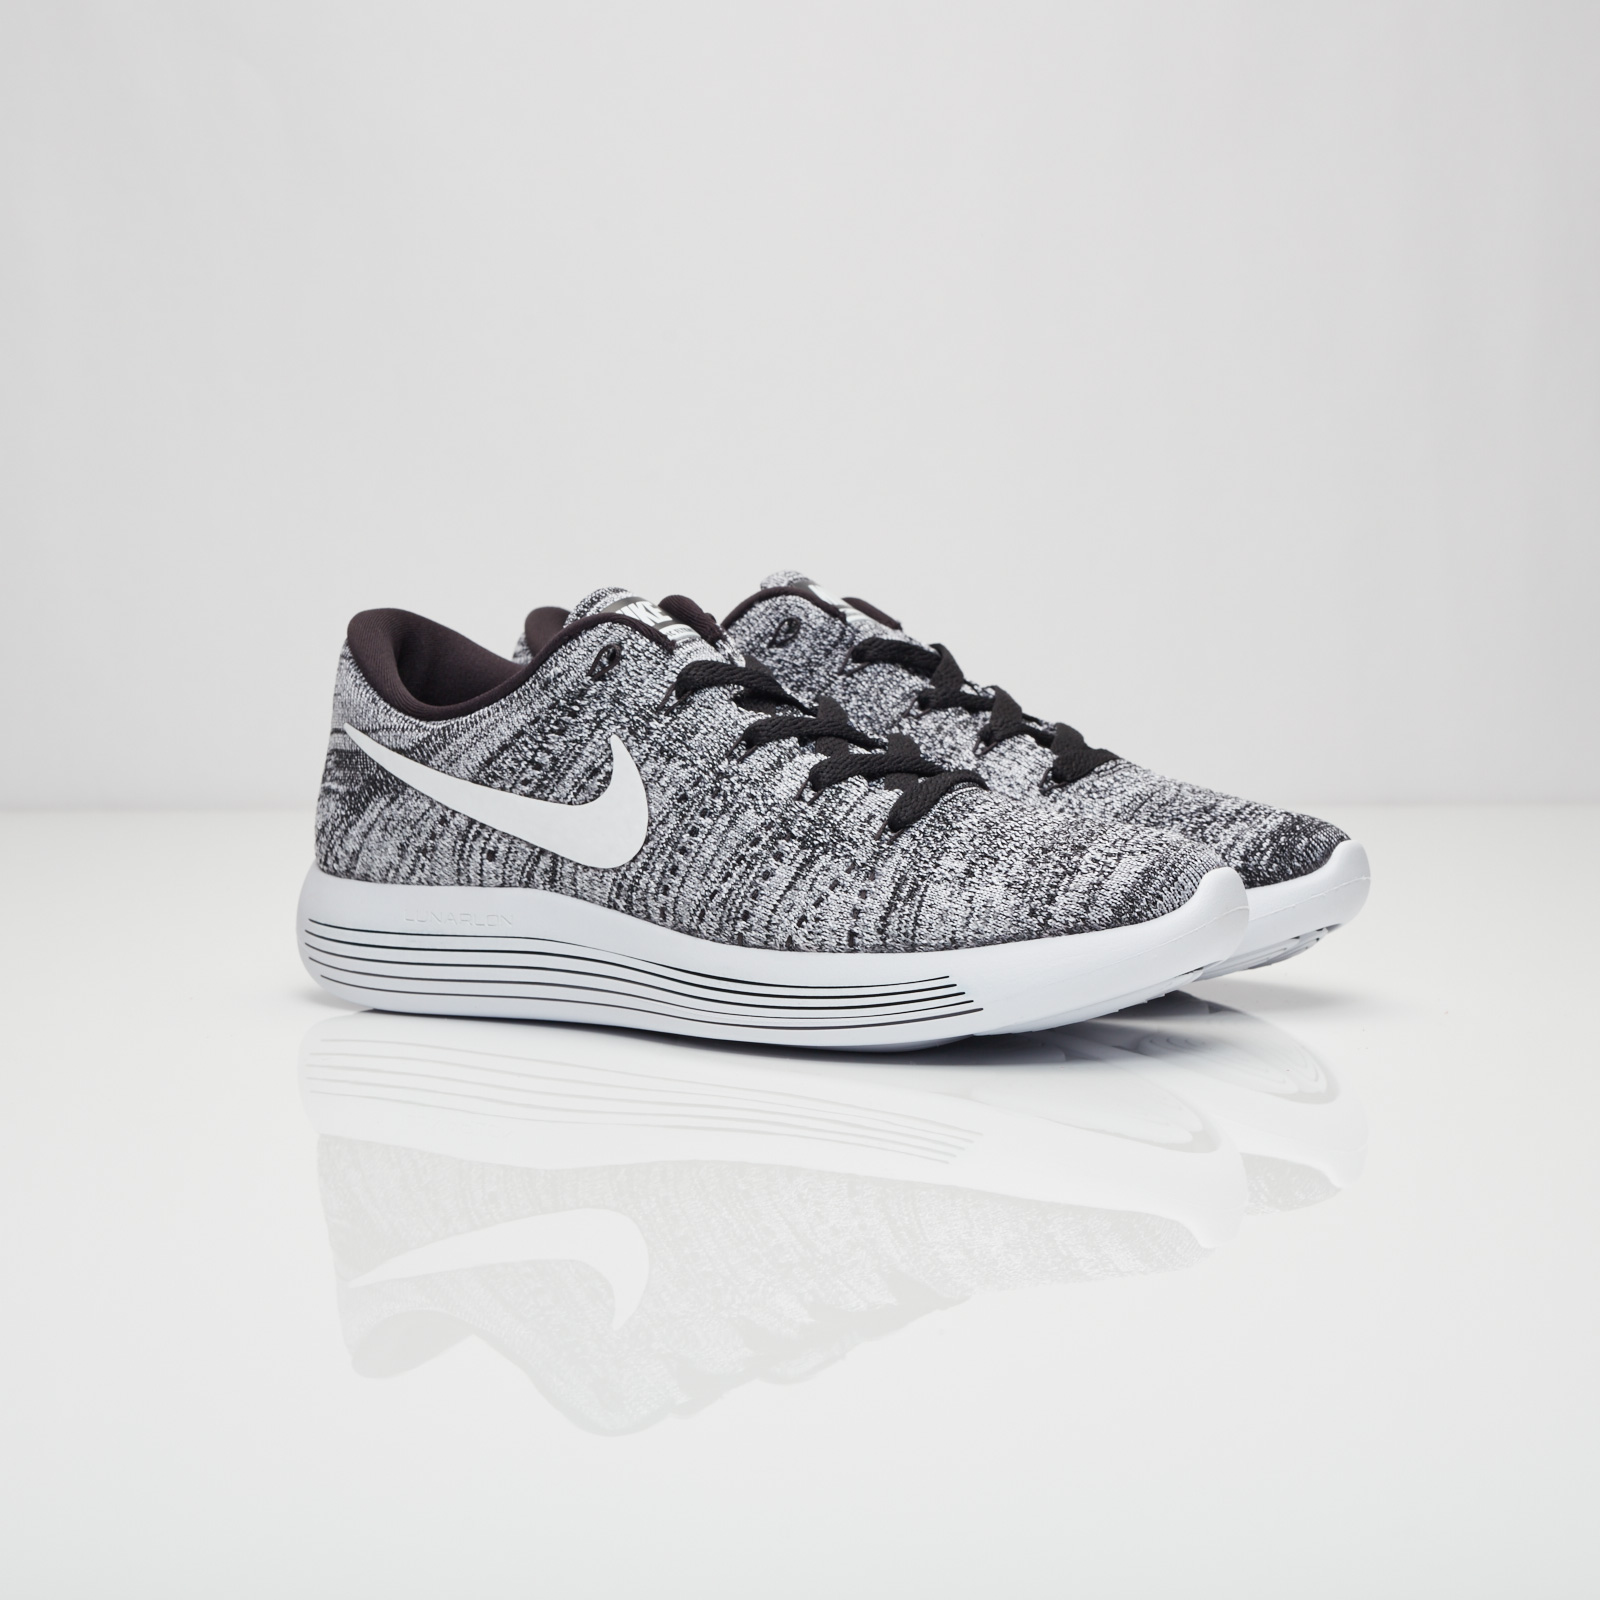 the latest 357c8 9aad5 Nike Wmns Lunarepic Low Flyknit - 843765-001 ...